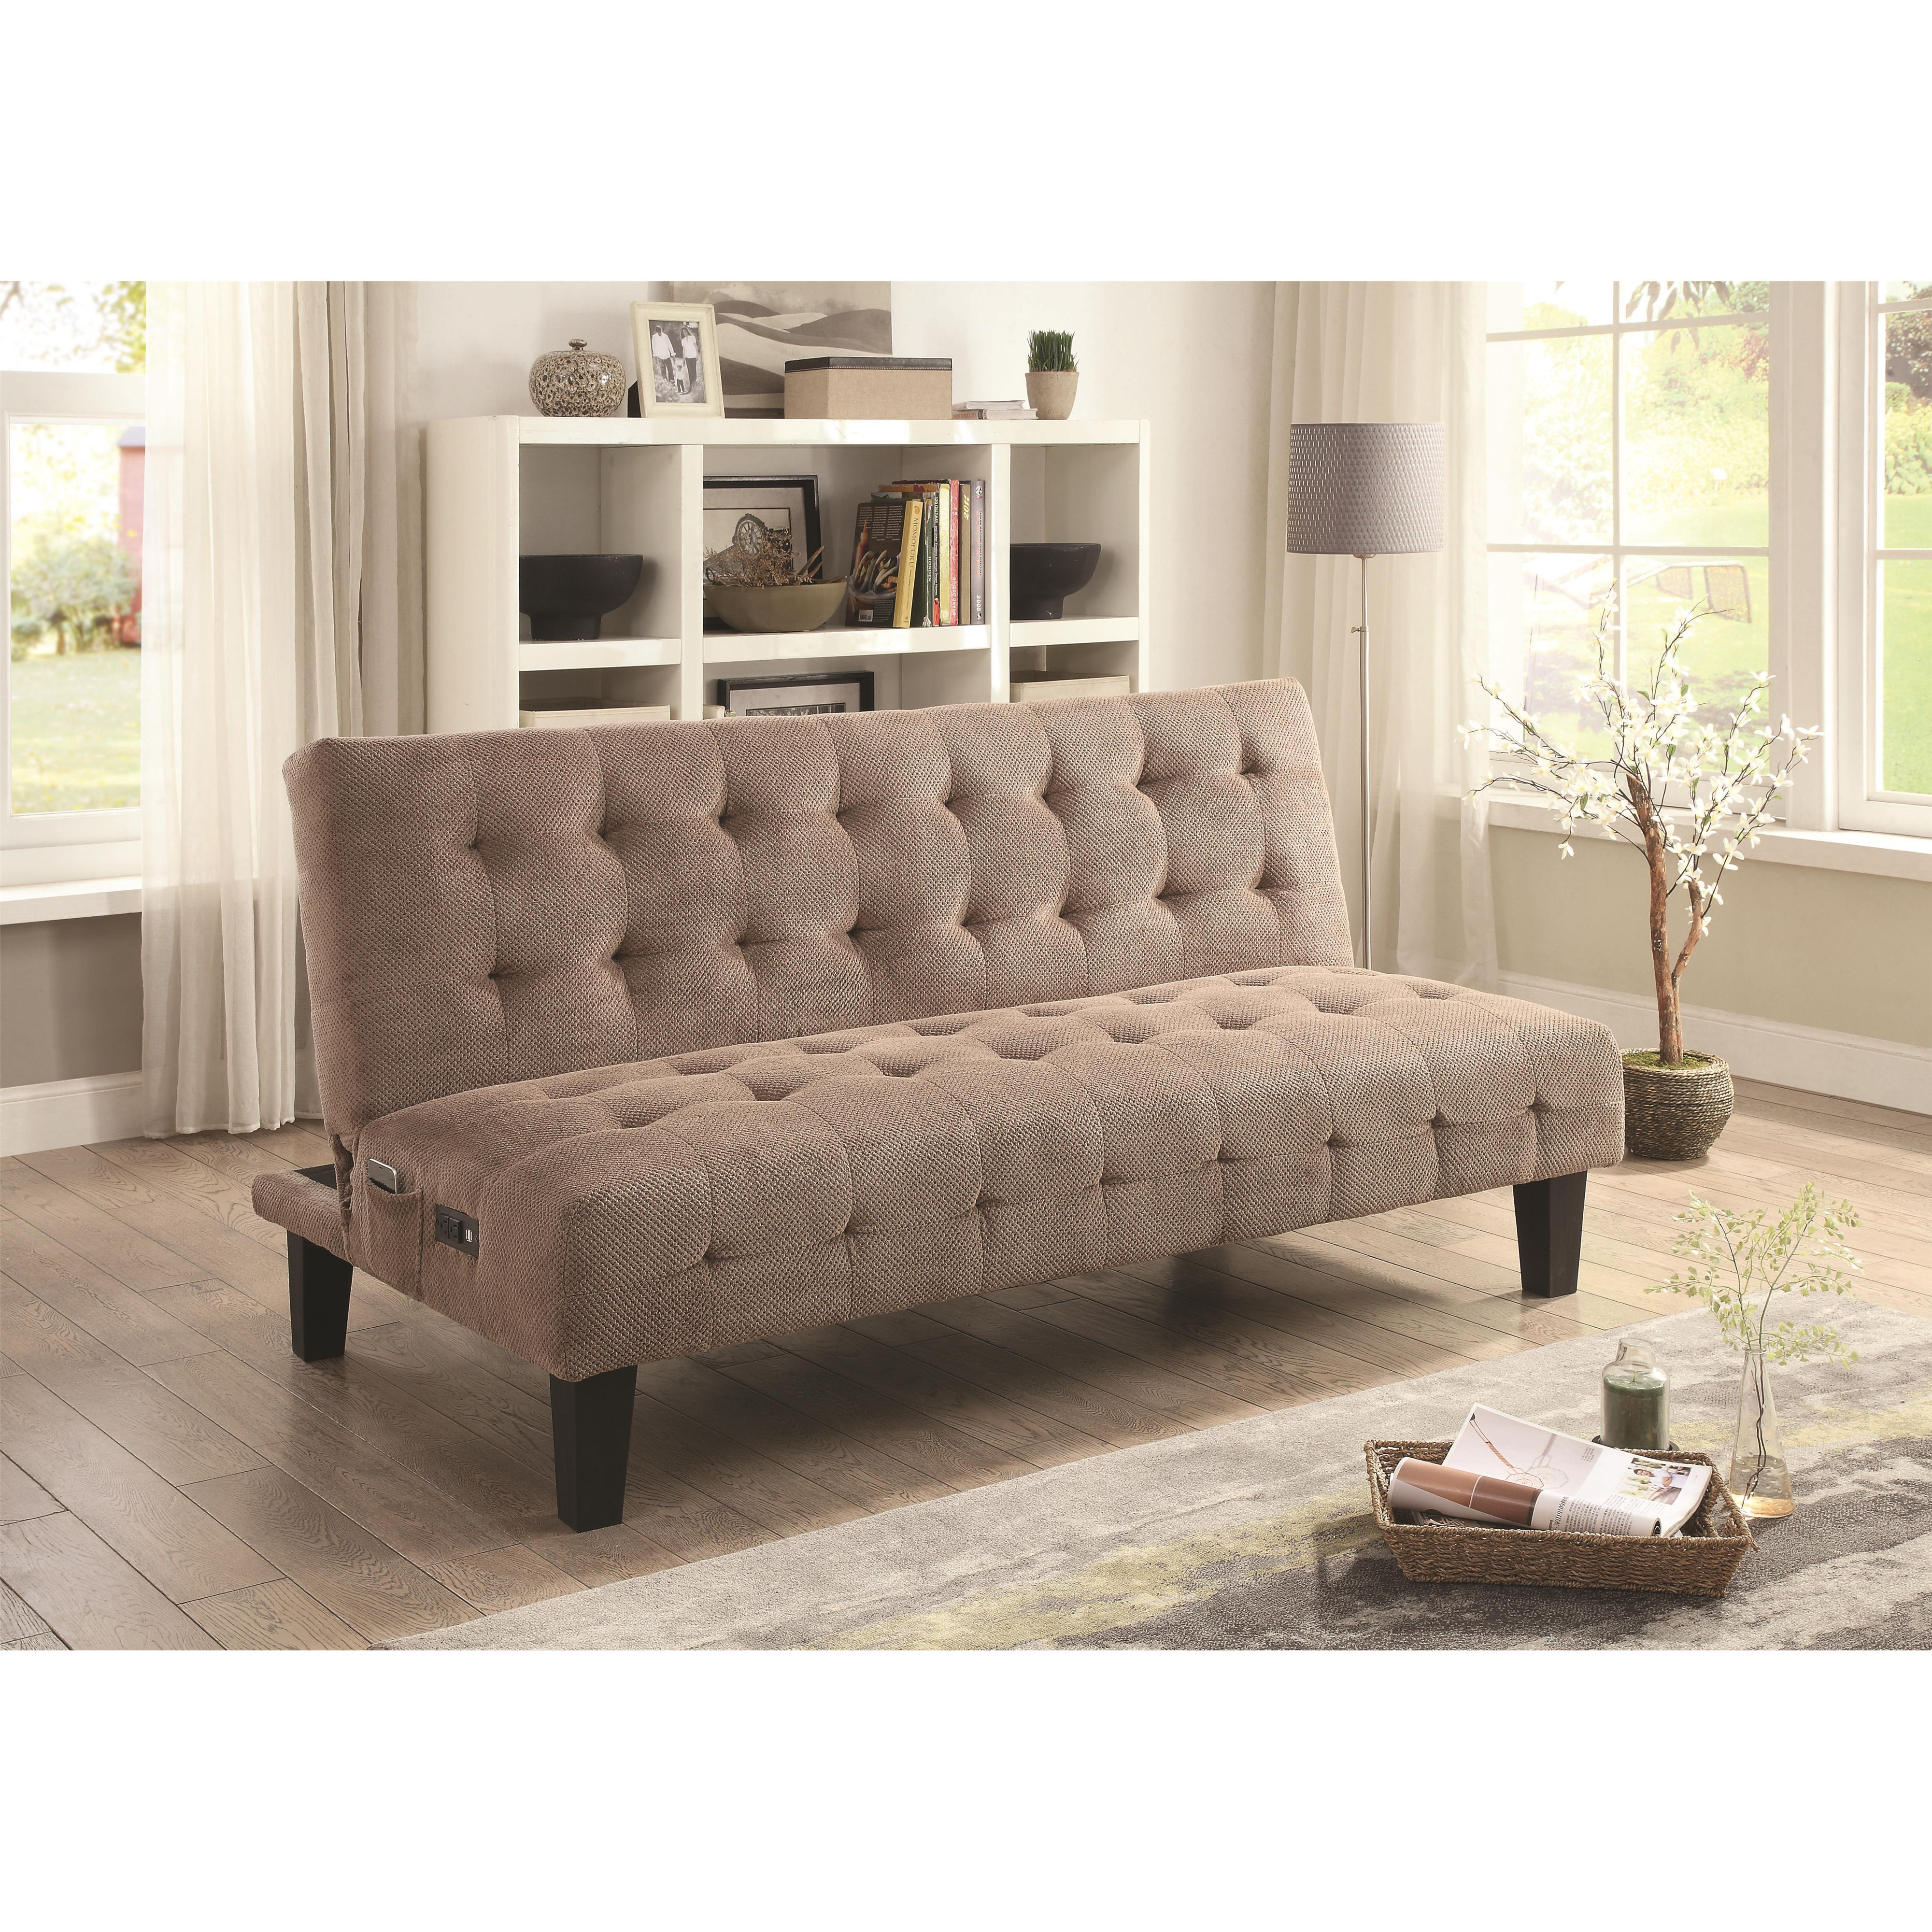 Sofa Beds And Futons Adjustable Sofa Bed With Usb And